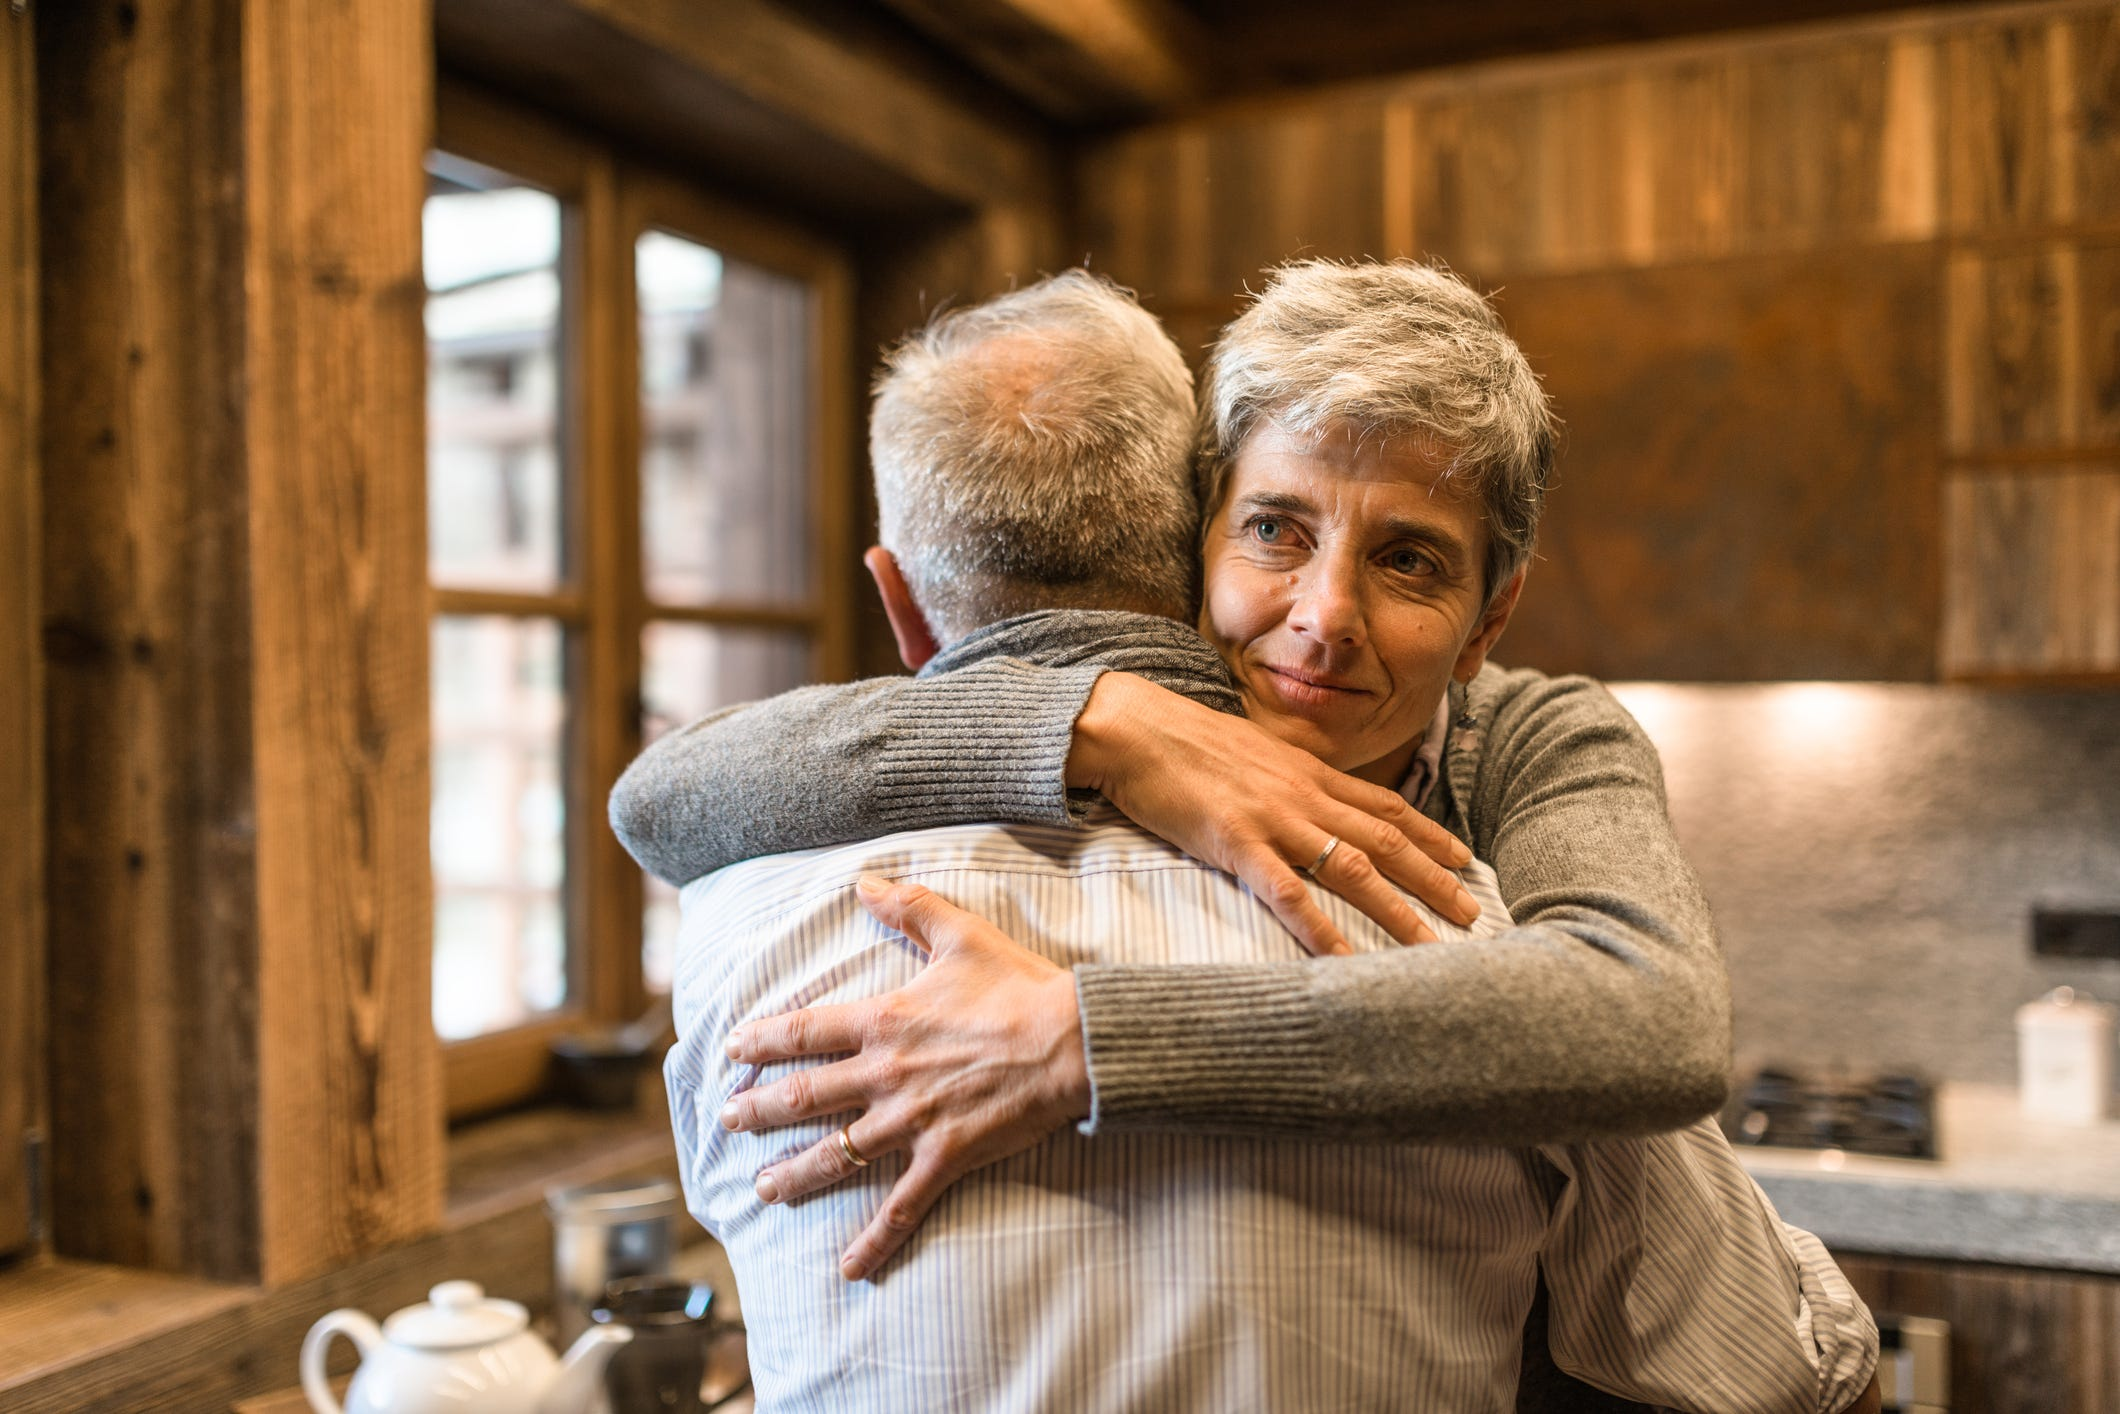 Senior Housing & Care: navigating the options in Chittenden County